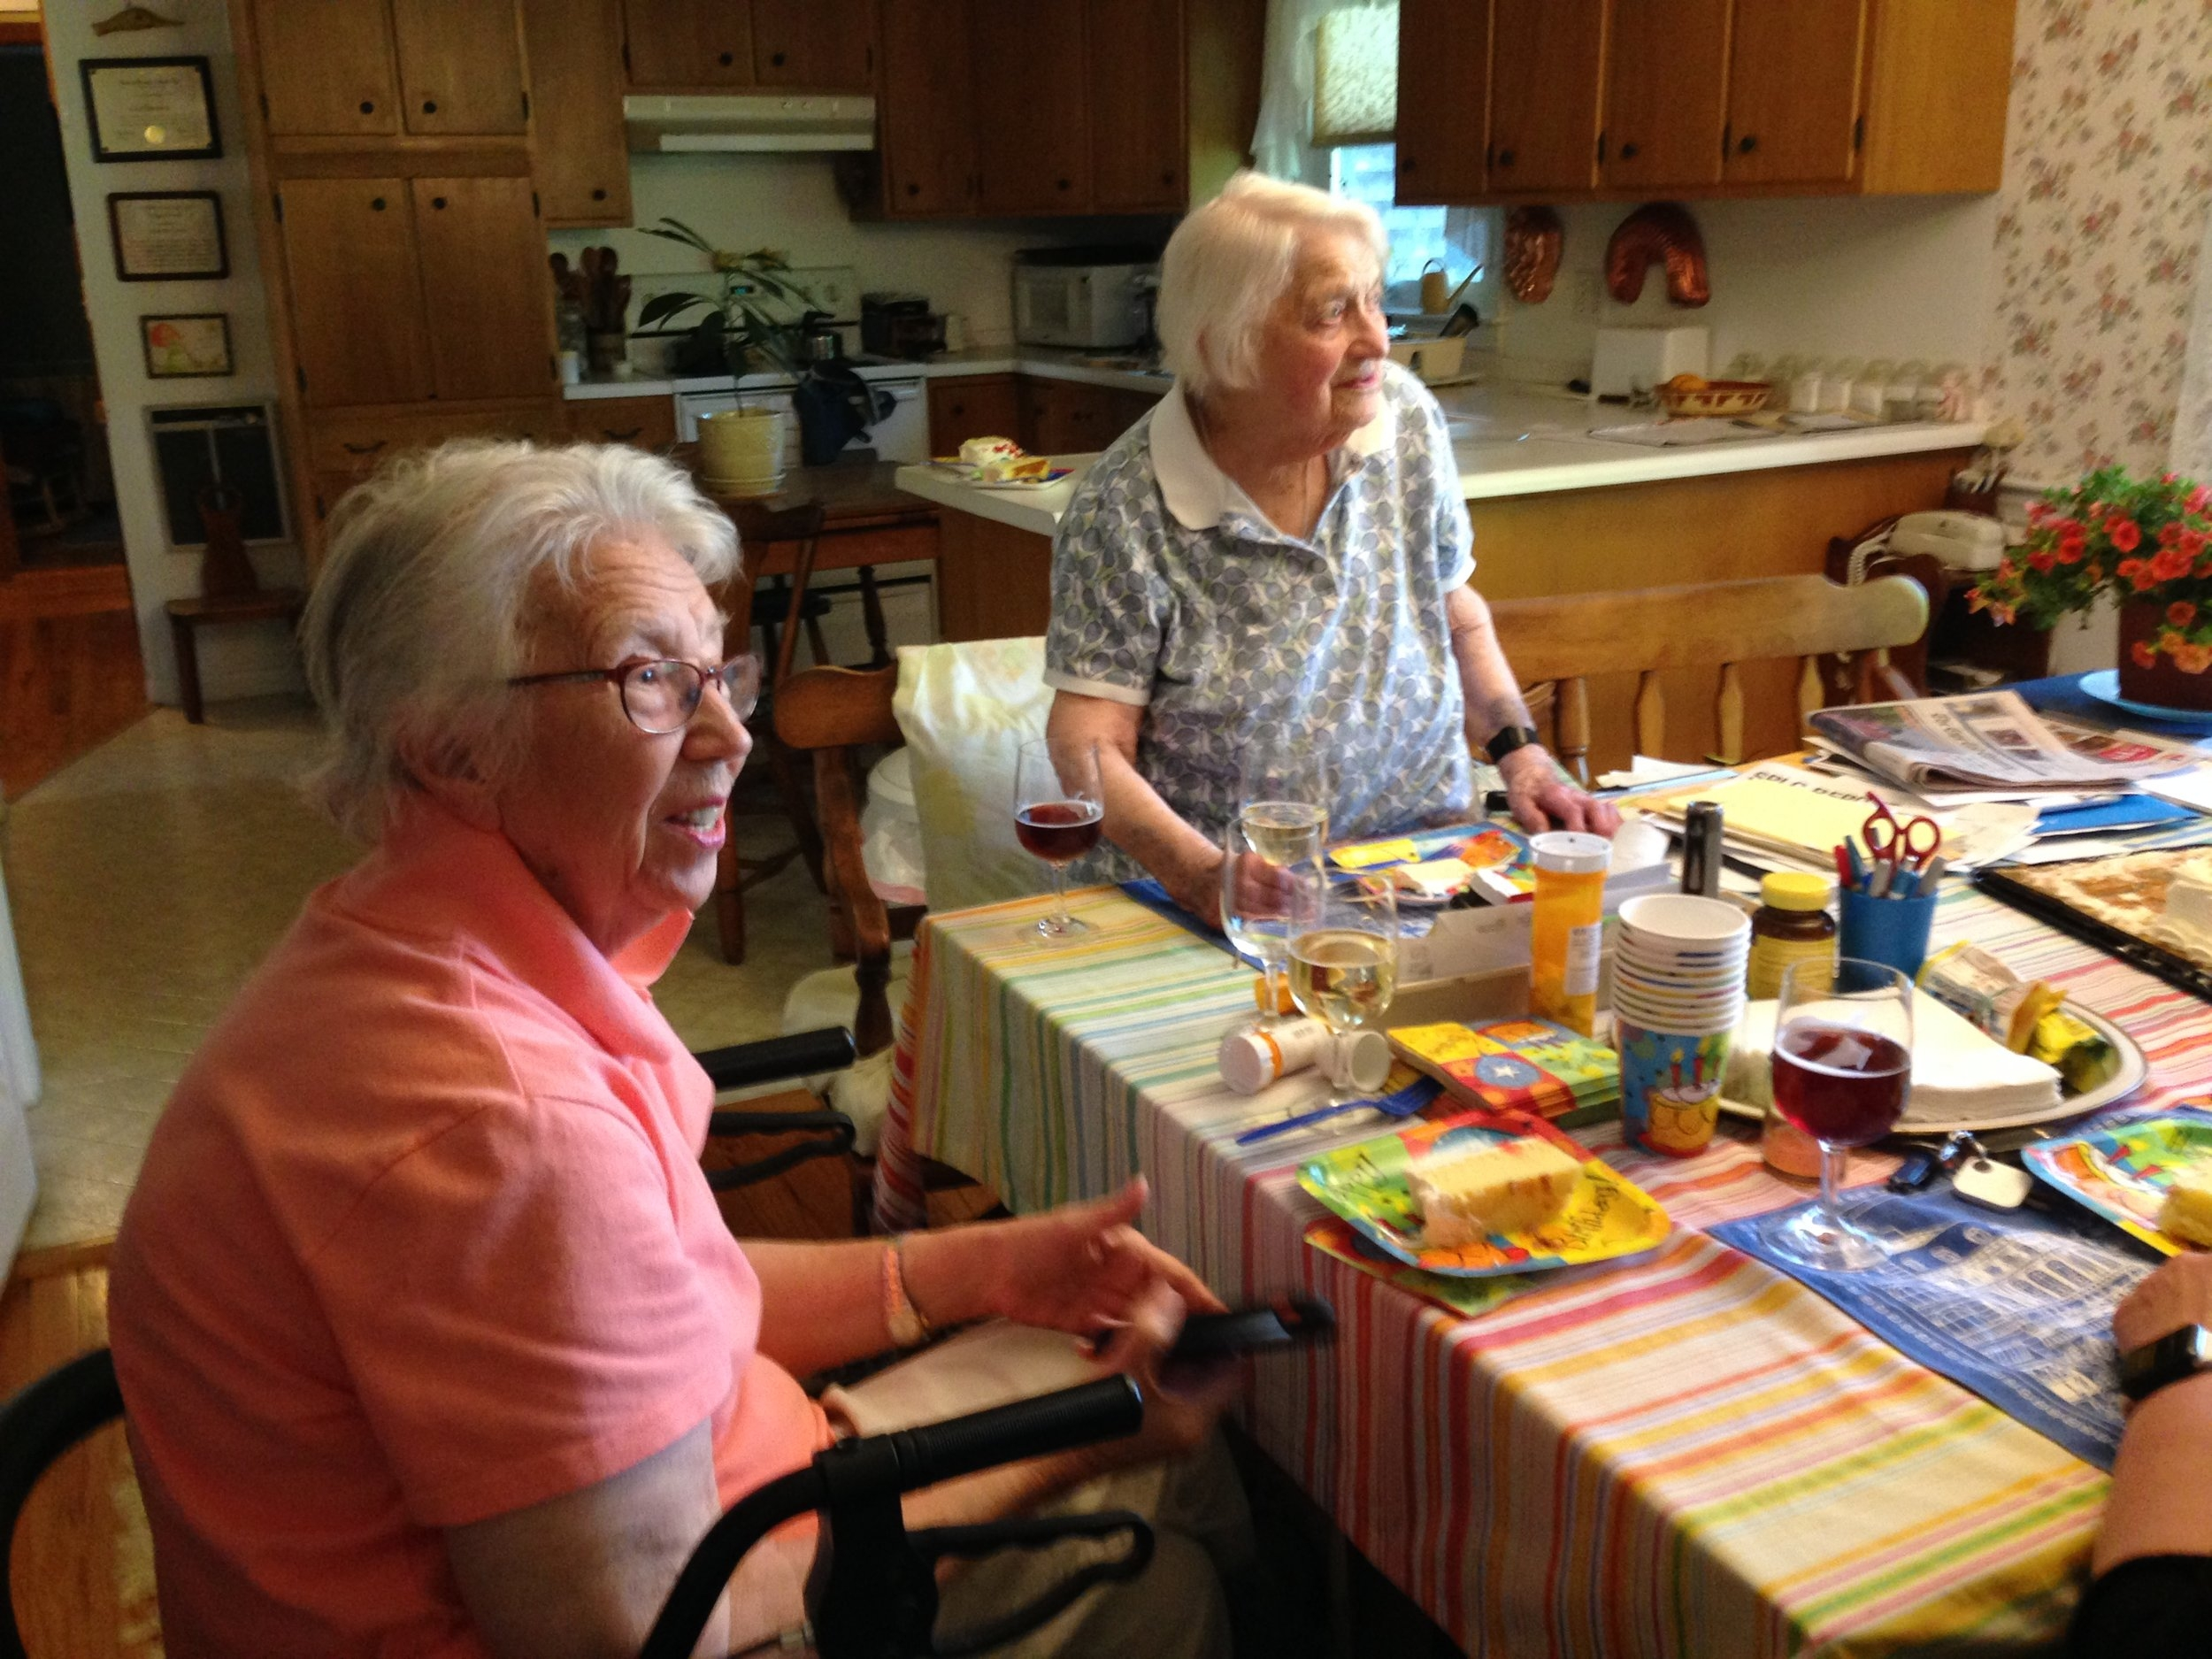 My cousin at 105 on the right